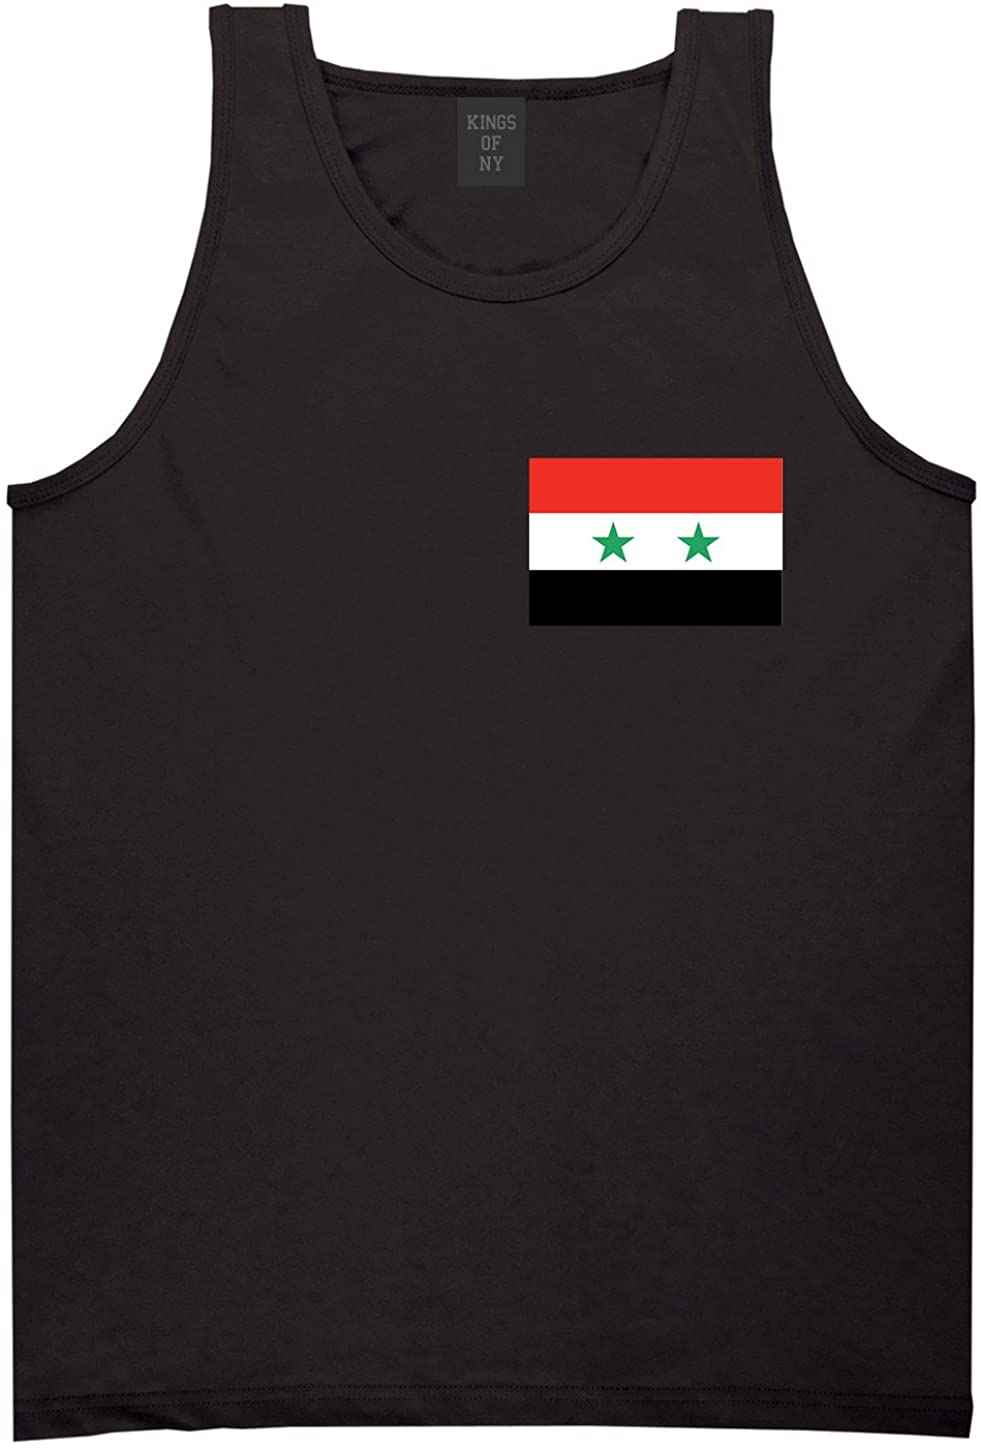 Kings Of NY Syria Flag Country Chest Tank Top Shirt